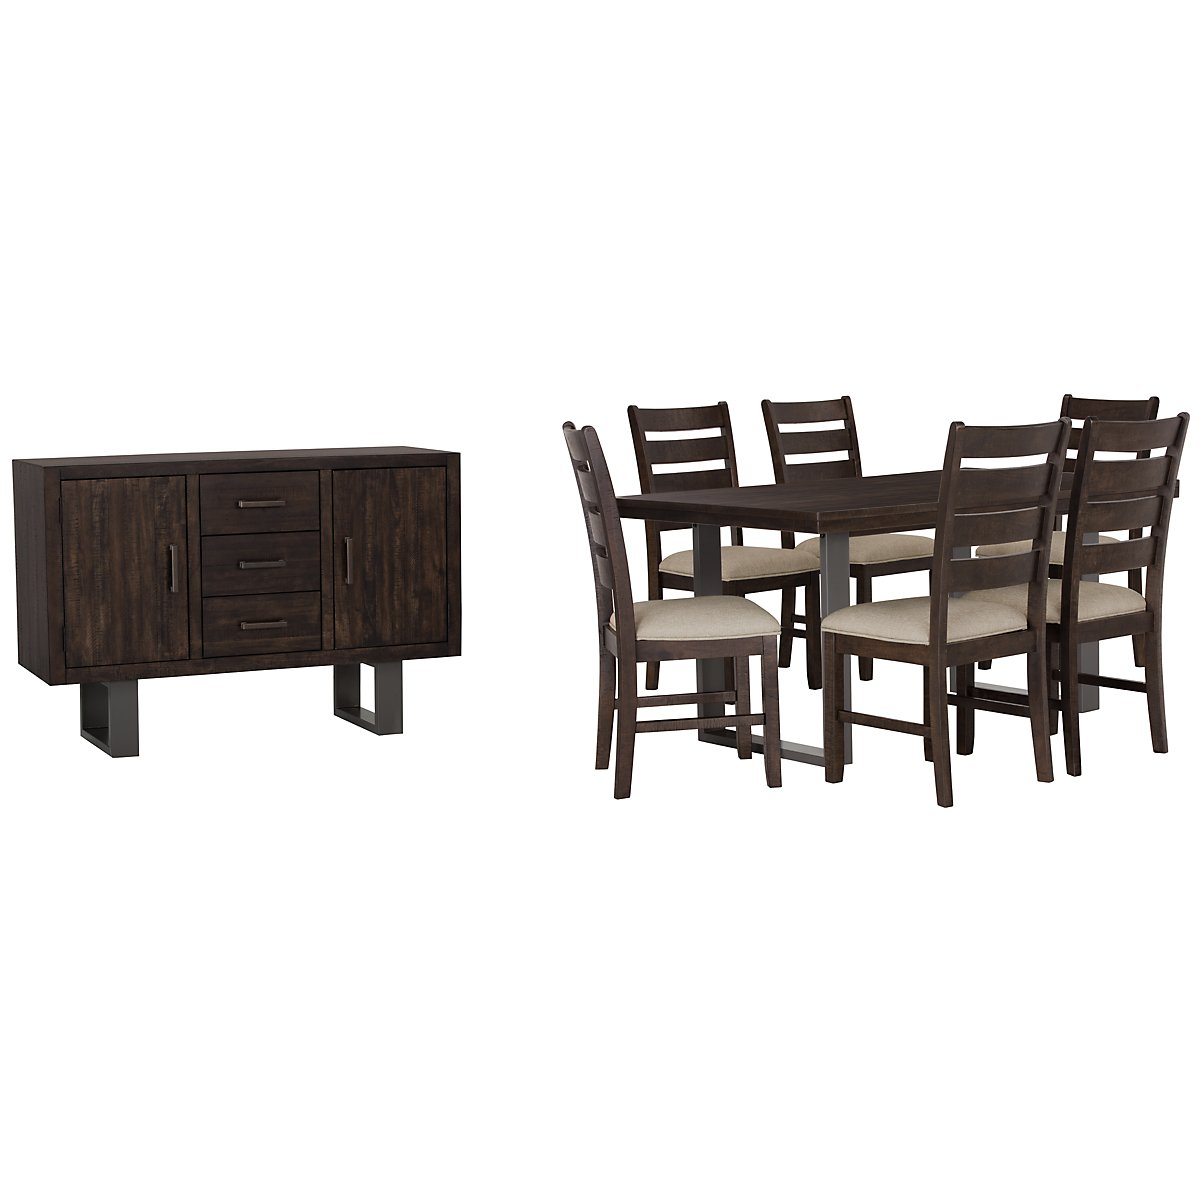 Sawyer Dark Tone Wood Rect Dining Room